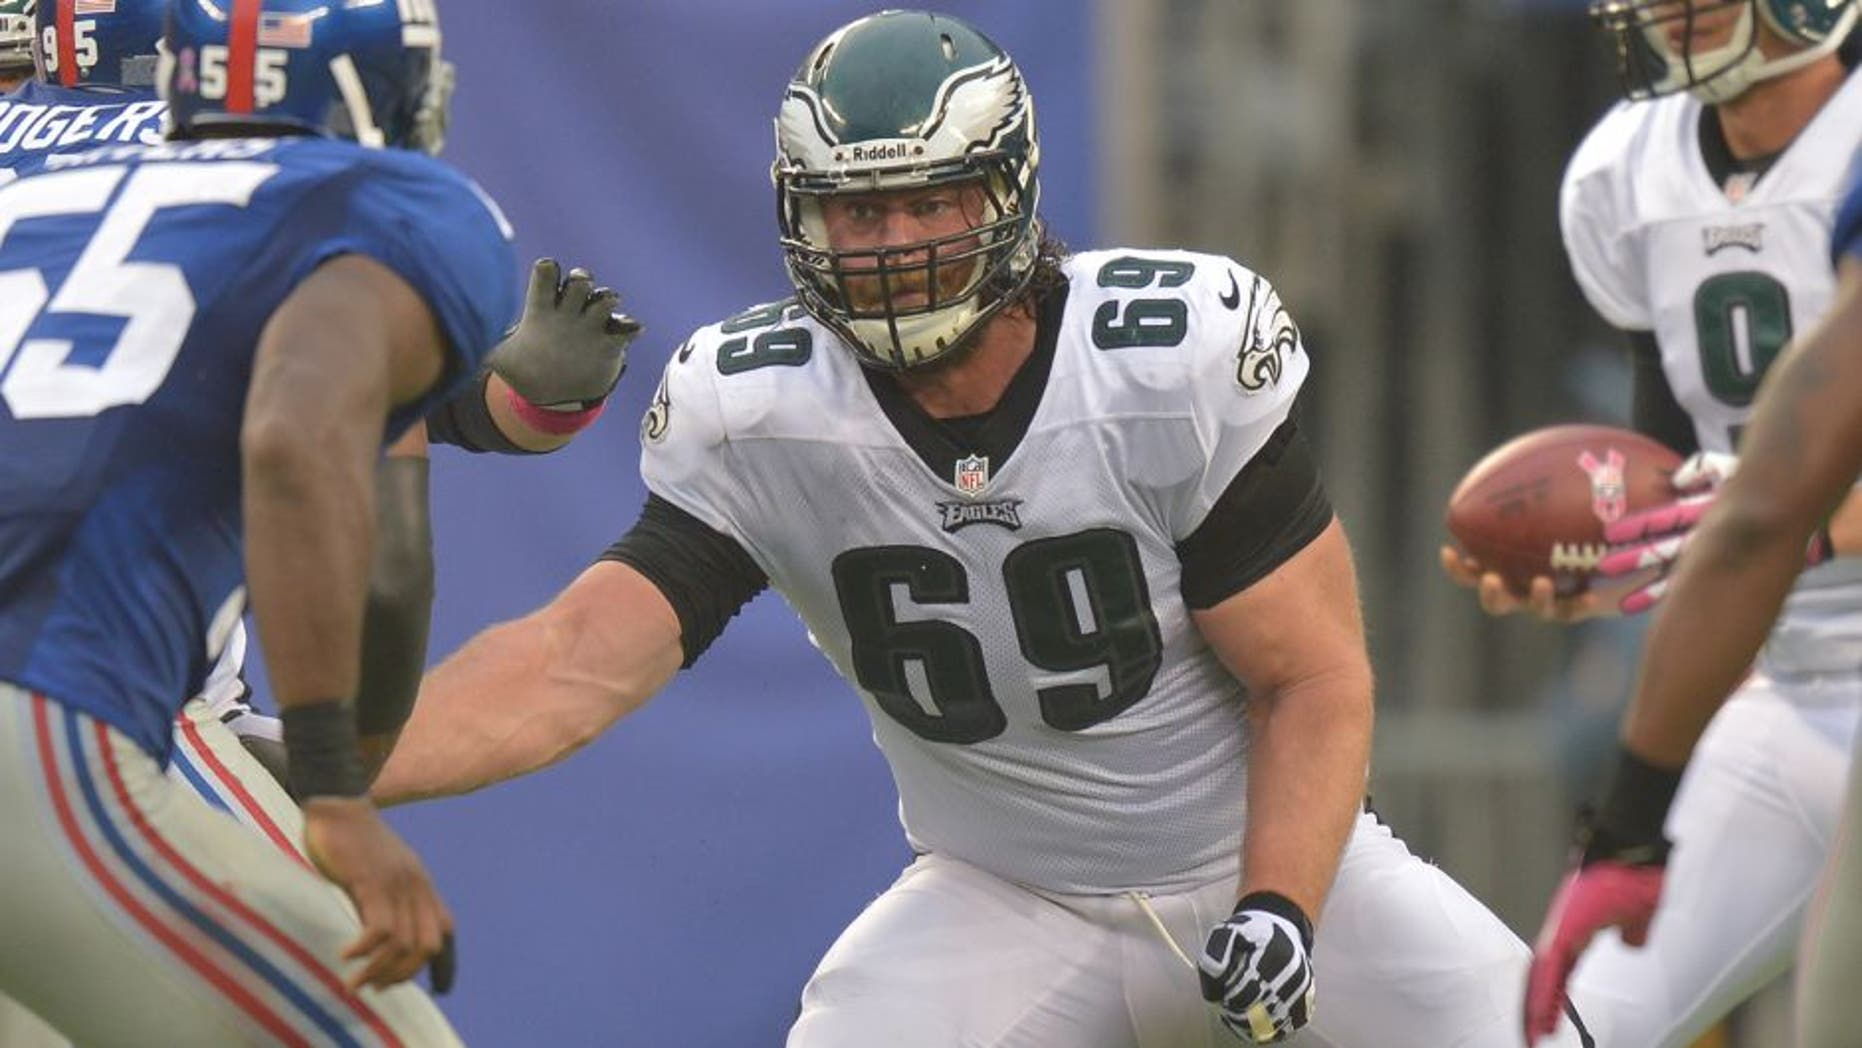 EAST RUTHERFORD, NJ - OCTOBER 06: Evan Mathis #69 of the Philadelphia Eagles blocks against the New York Giants at MetLife Stadium on October 6, 2013 in East Rutherford, New Jersey. The Eagles won 36-21. (Photo by Drew Hallowell/Philadelphia Eagles/Getty Images)